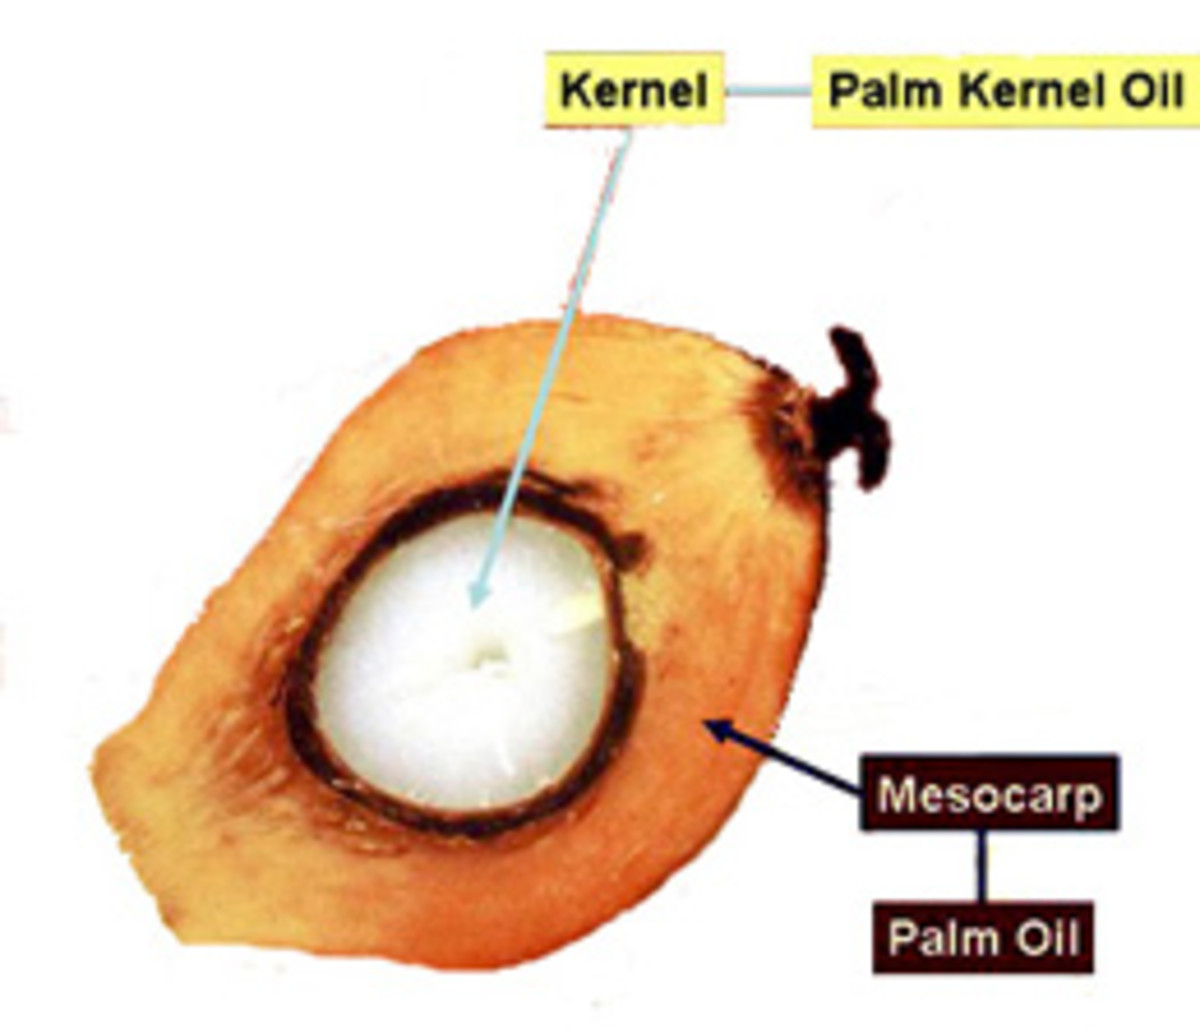 The anatomy of a palm kernel fruit.